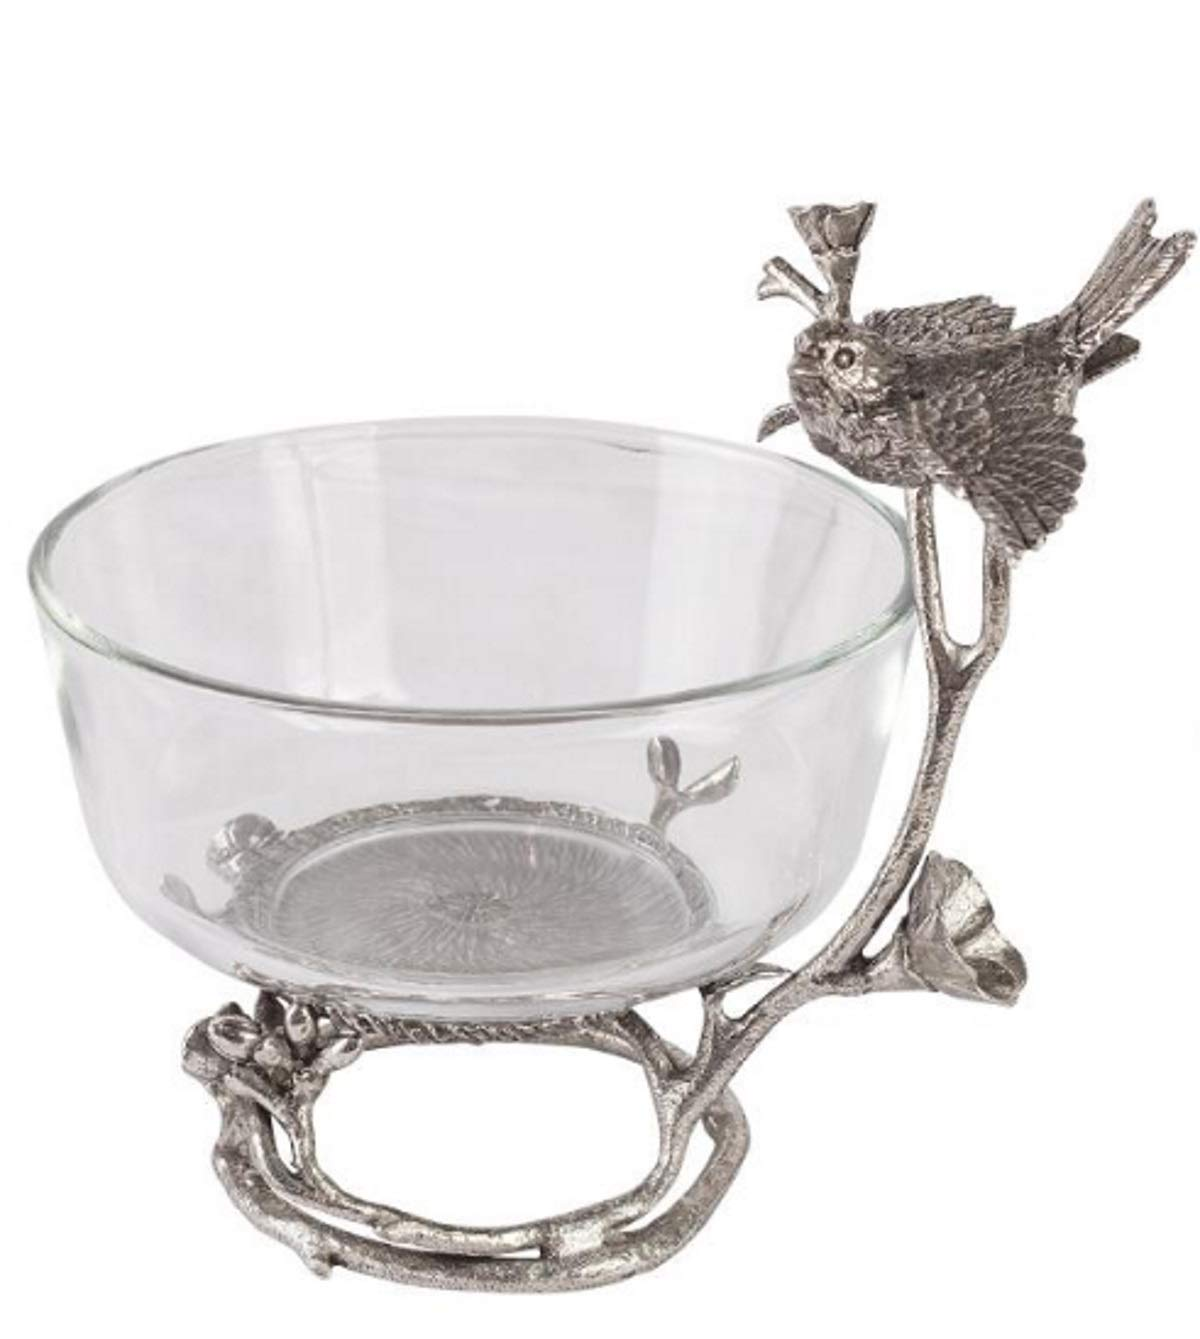 Victorian Trading Co Pewter Perched Sparrow Glass Bowl